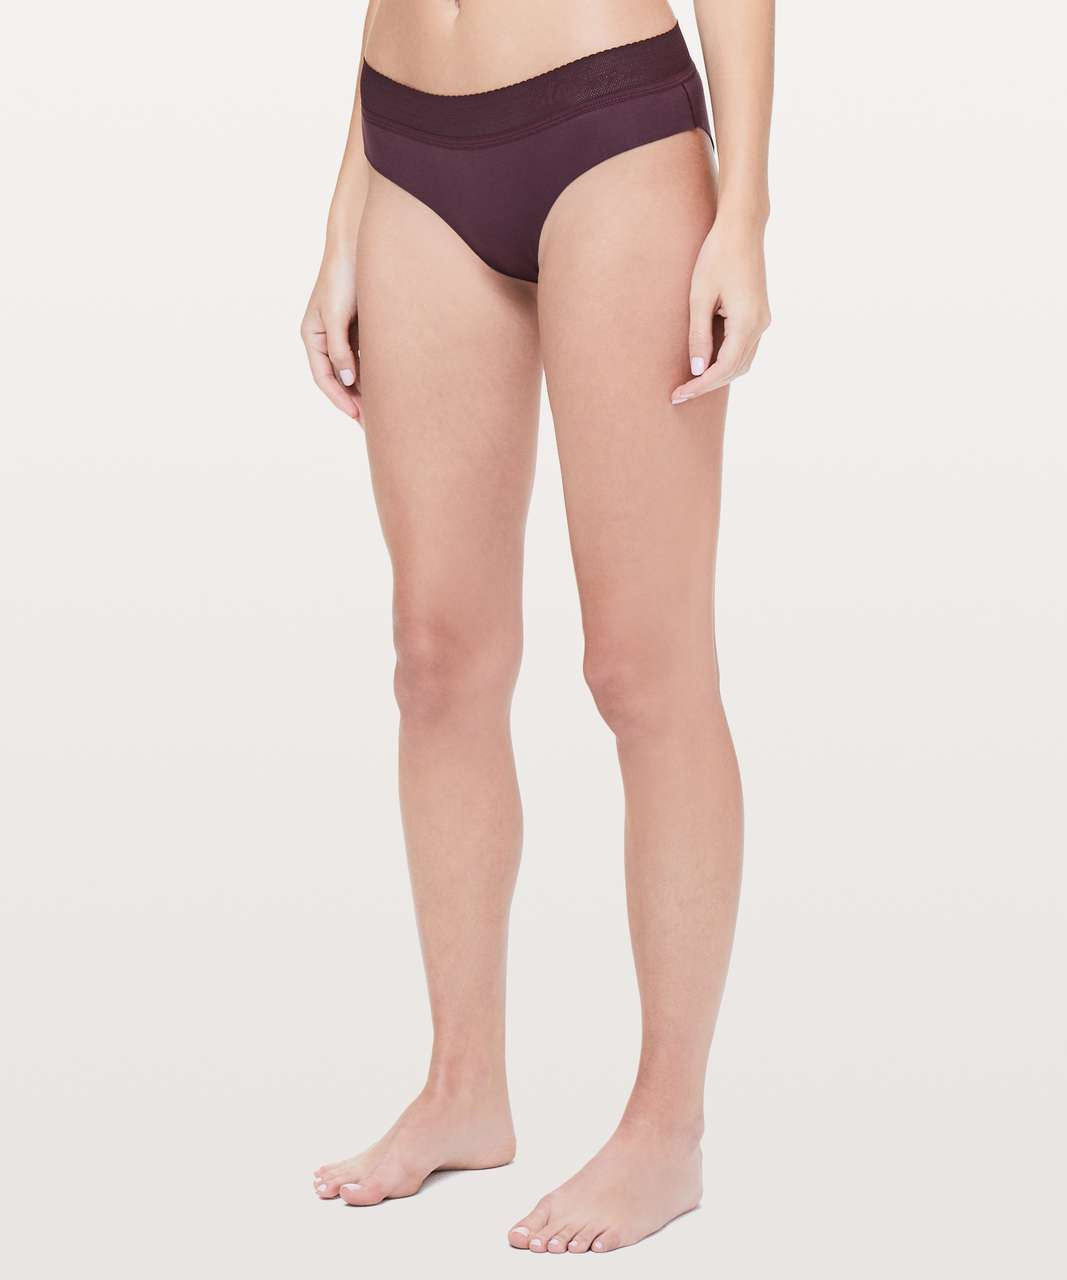 Lululemon Ever Essentials Bikini - Dark Adobe